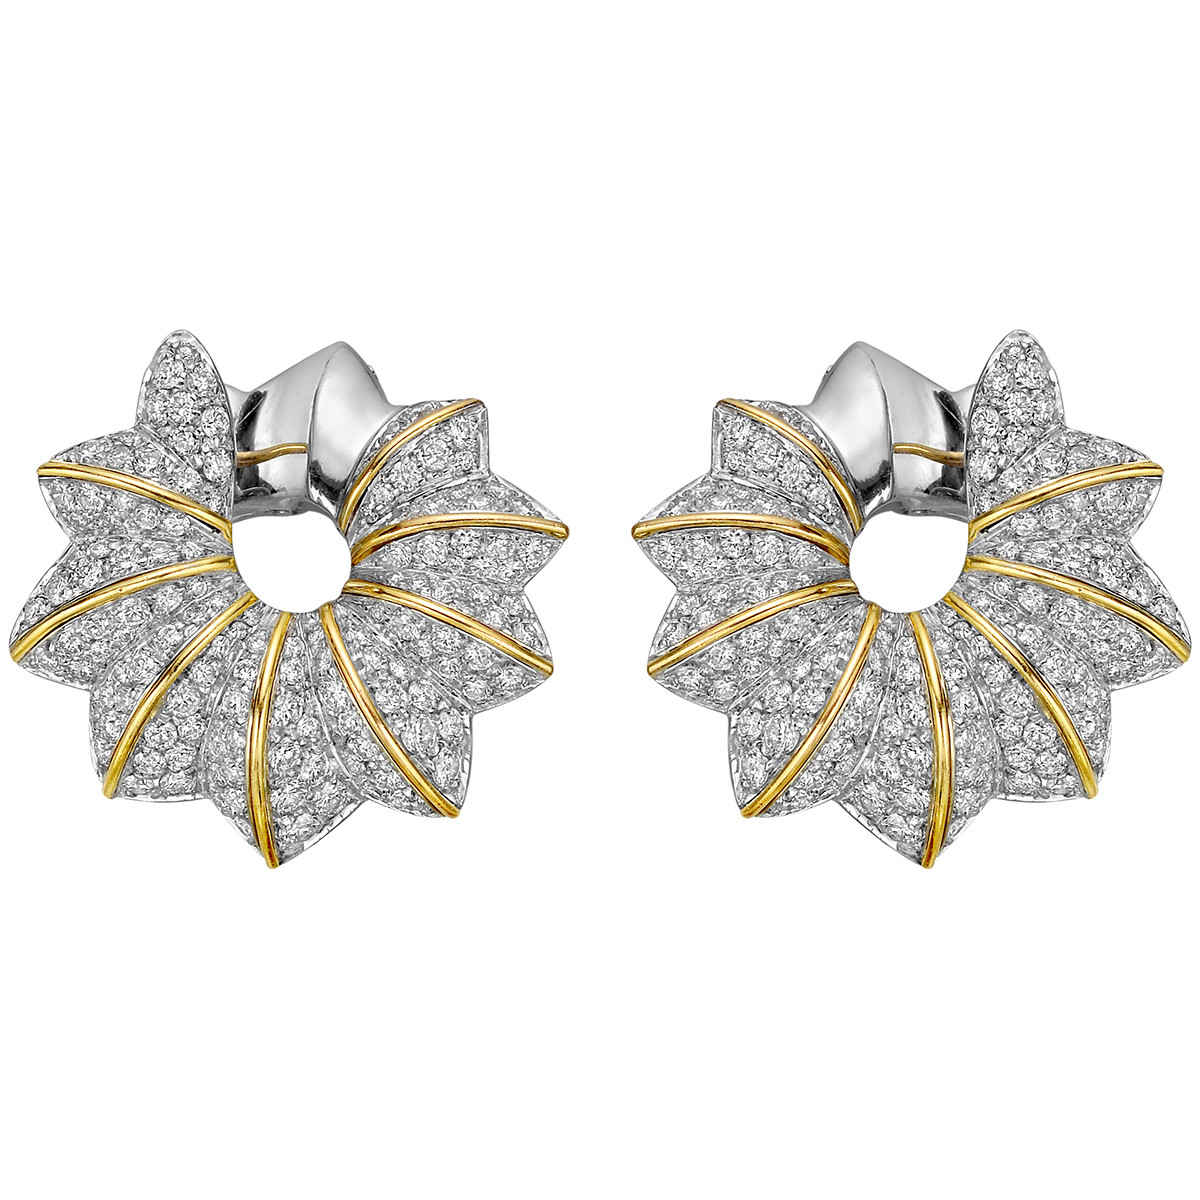 18k Gold & Diamond Creole Earrings